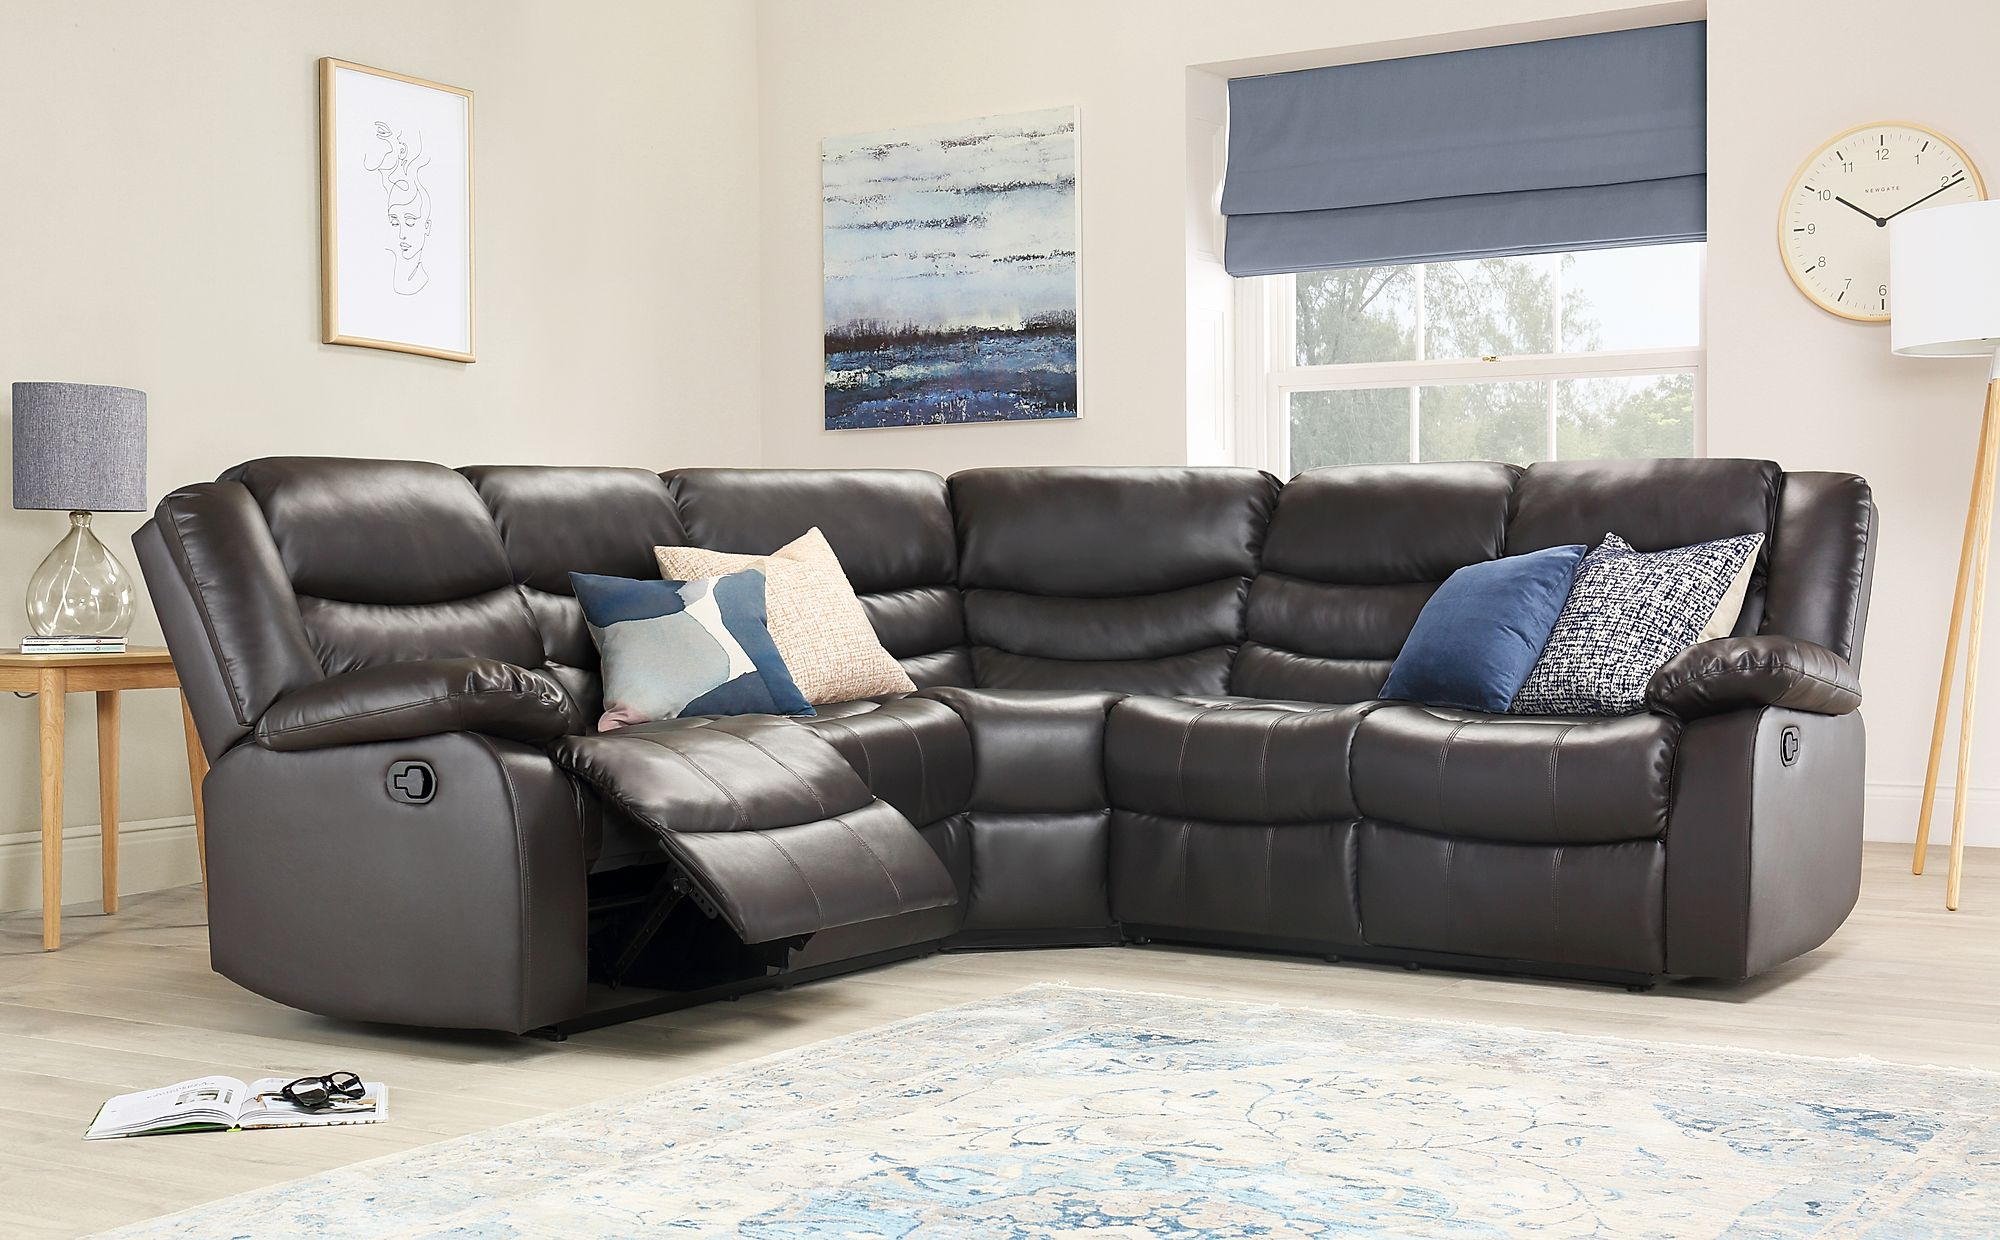 Sorrento Brown Leather Recliner Corner Sofa   Furniture Choice With Leather Corner Sofas (View 5 of 15)